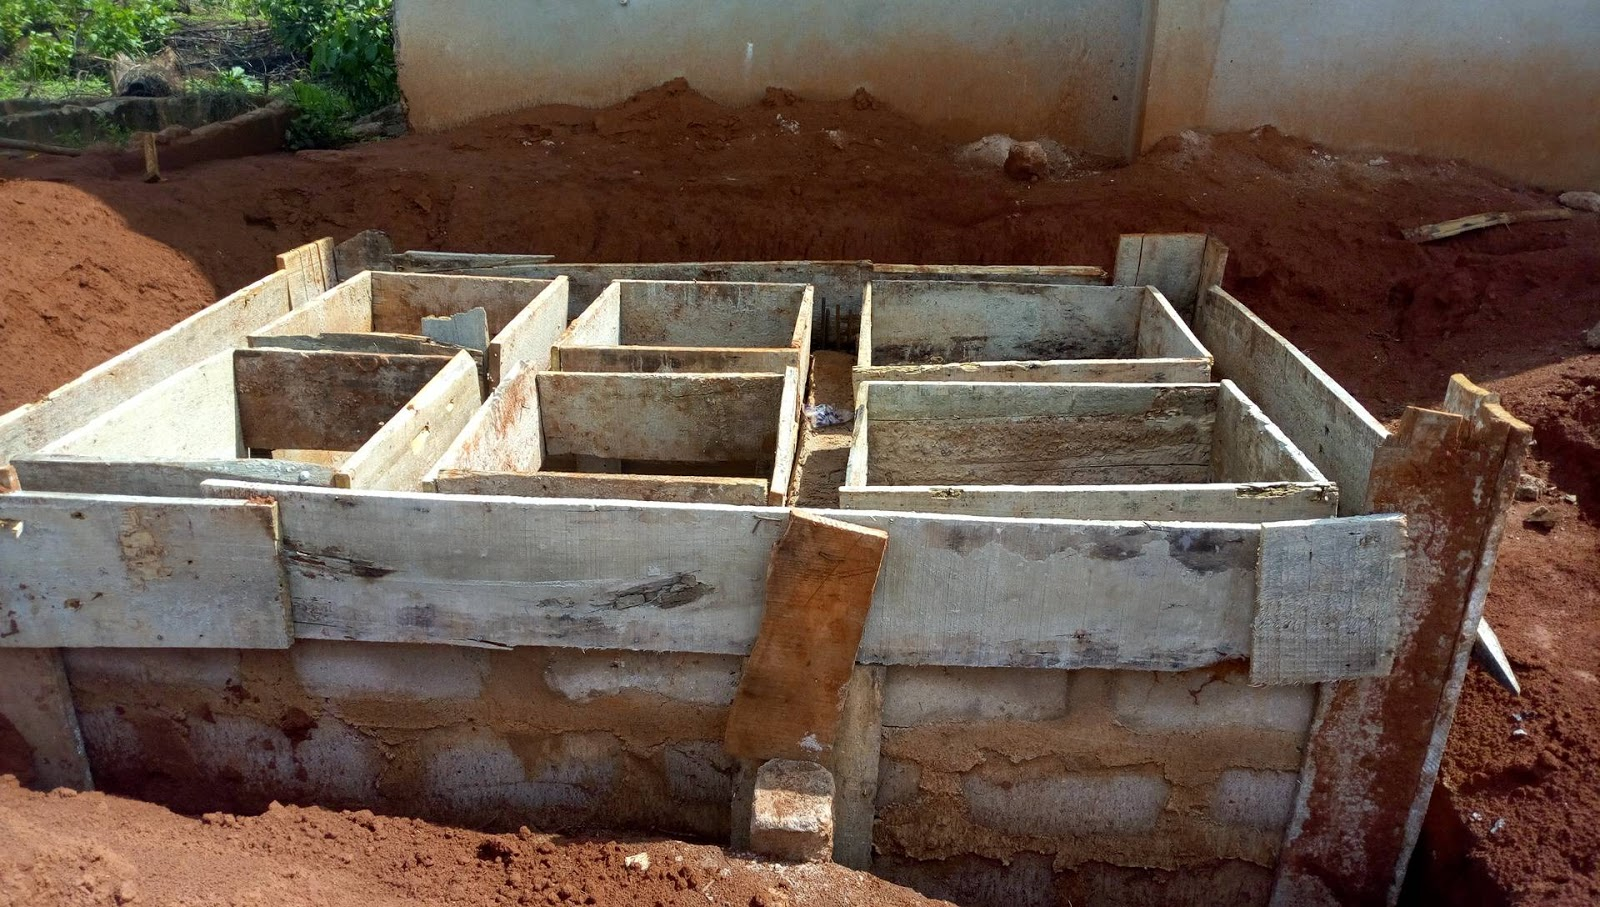 Septic tank cost-San Diego Septic Tank Repair, Installation, & Pumping Service Pros-We do septic tank pumping, tank repairs, septic tank installations, 24/7 emergency septic services, septic tank replacement, inspections, drain cleaning, high velocity water jetting, septic system cleaning, pump-outs, septic tank maintenance, and more